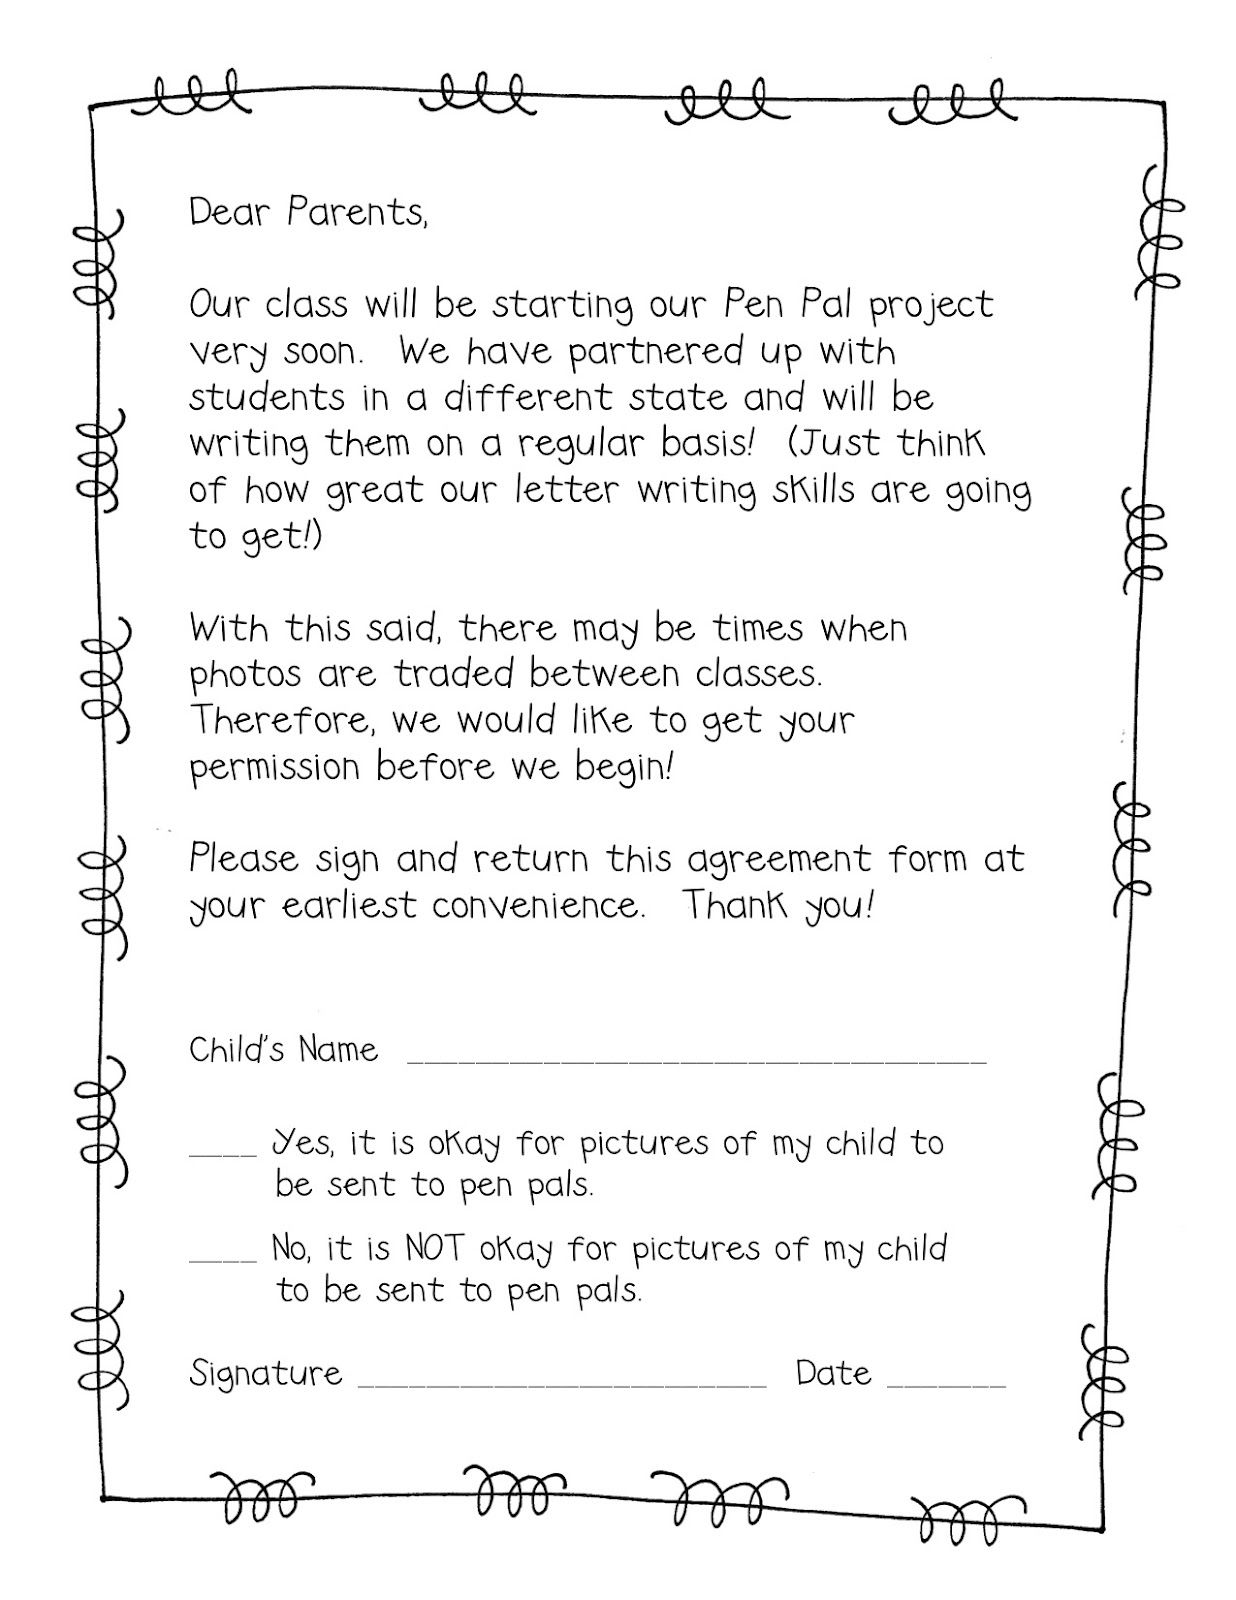 pen pal bie parent permission slip school pen pal bie parent permission slip